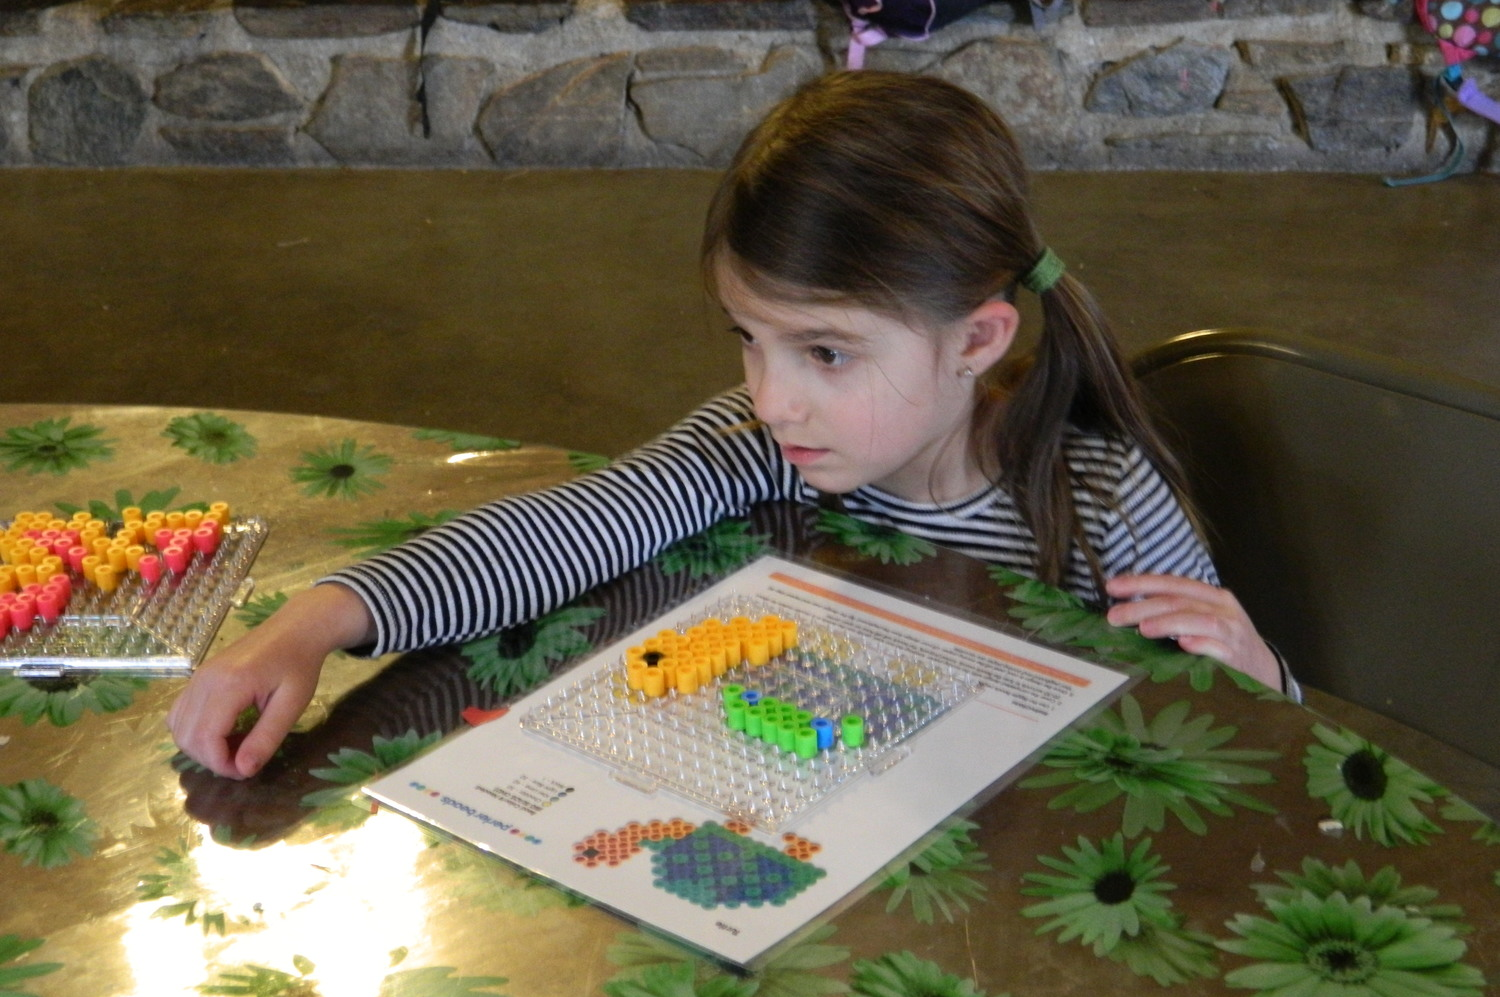 Hamma beads are always a popular choice.